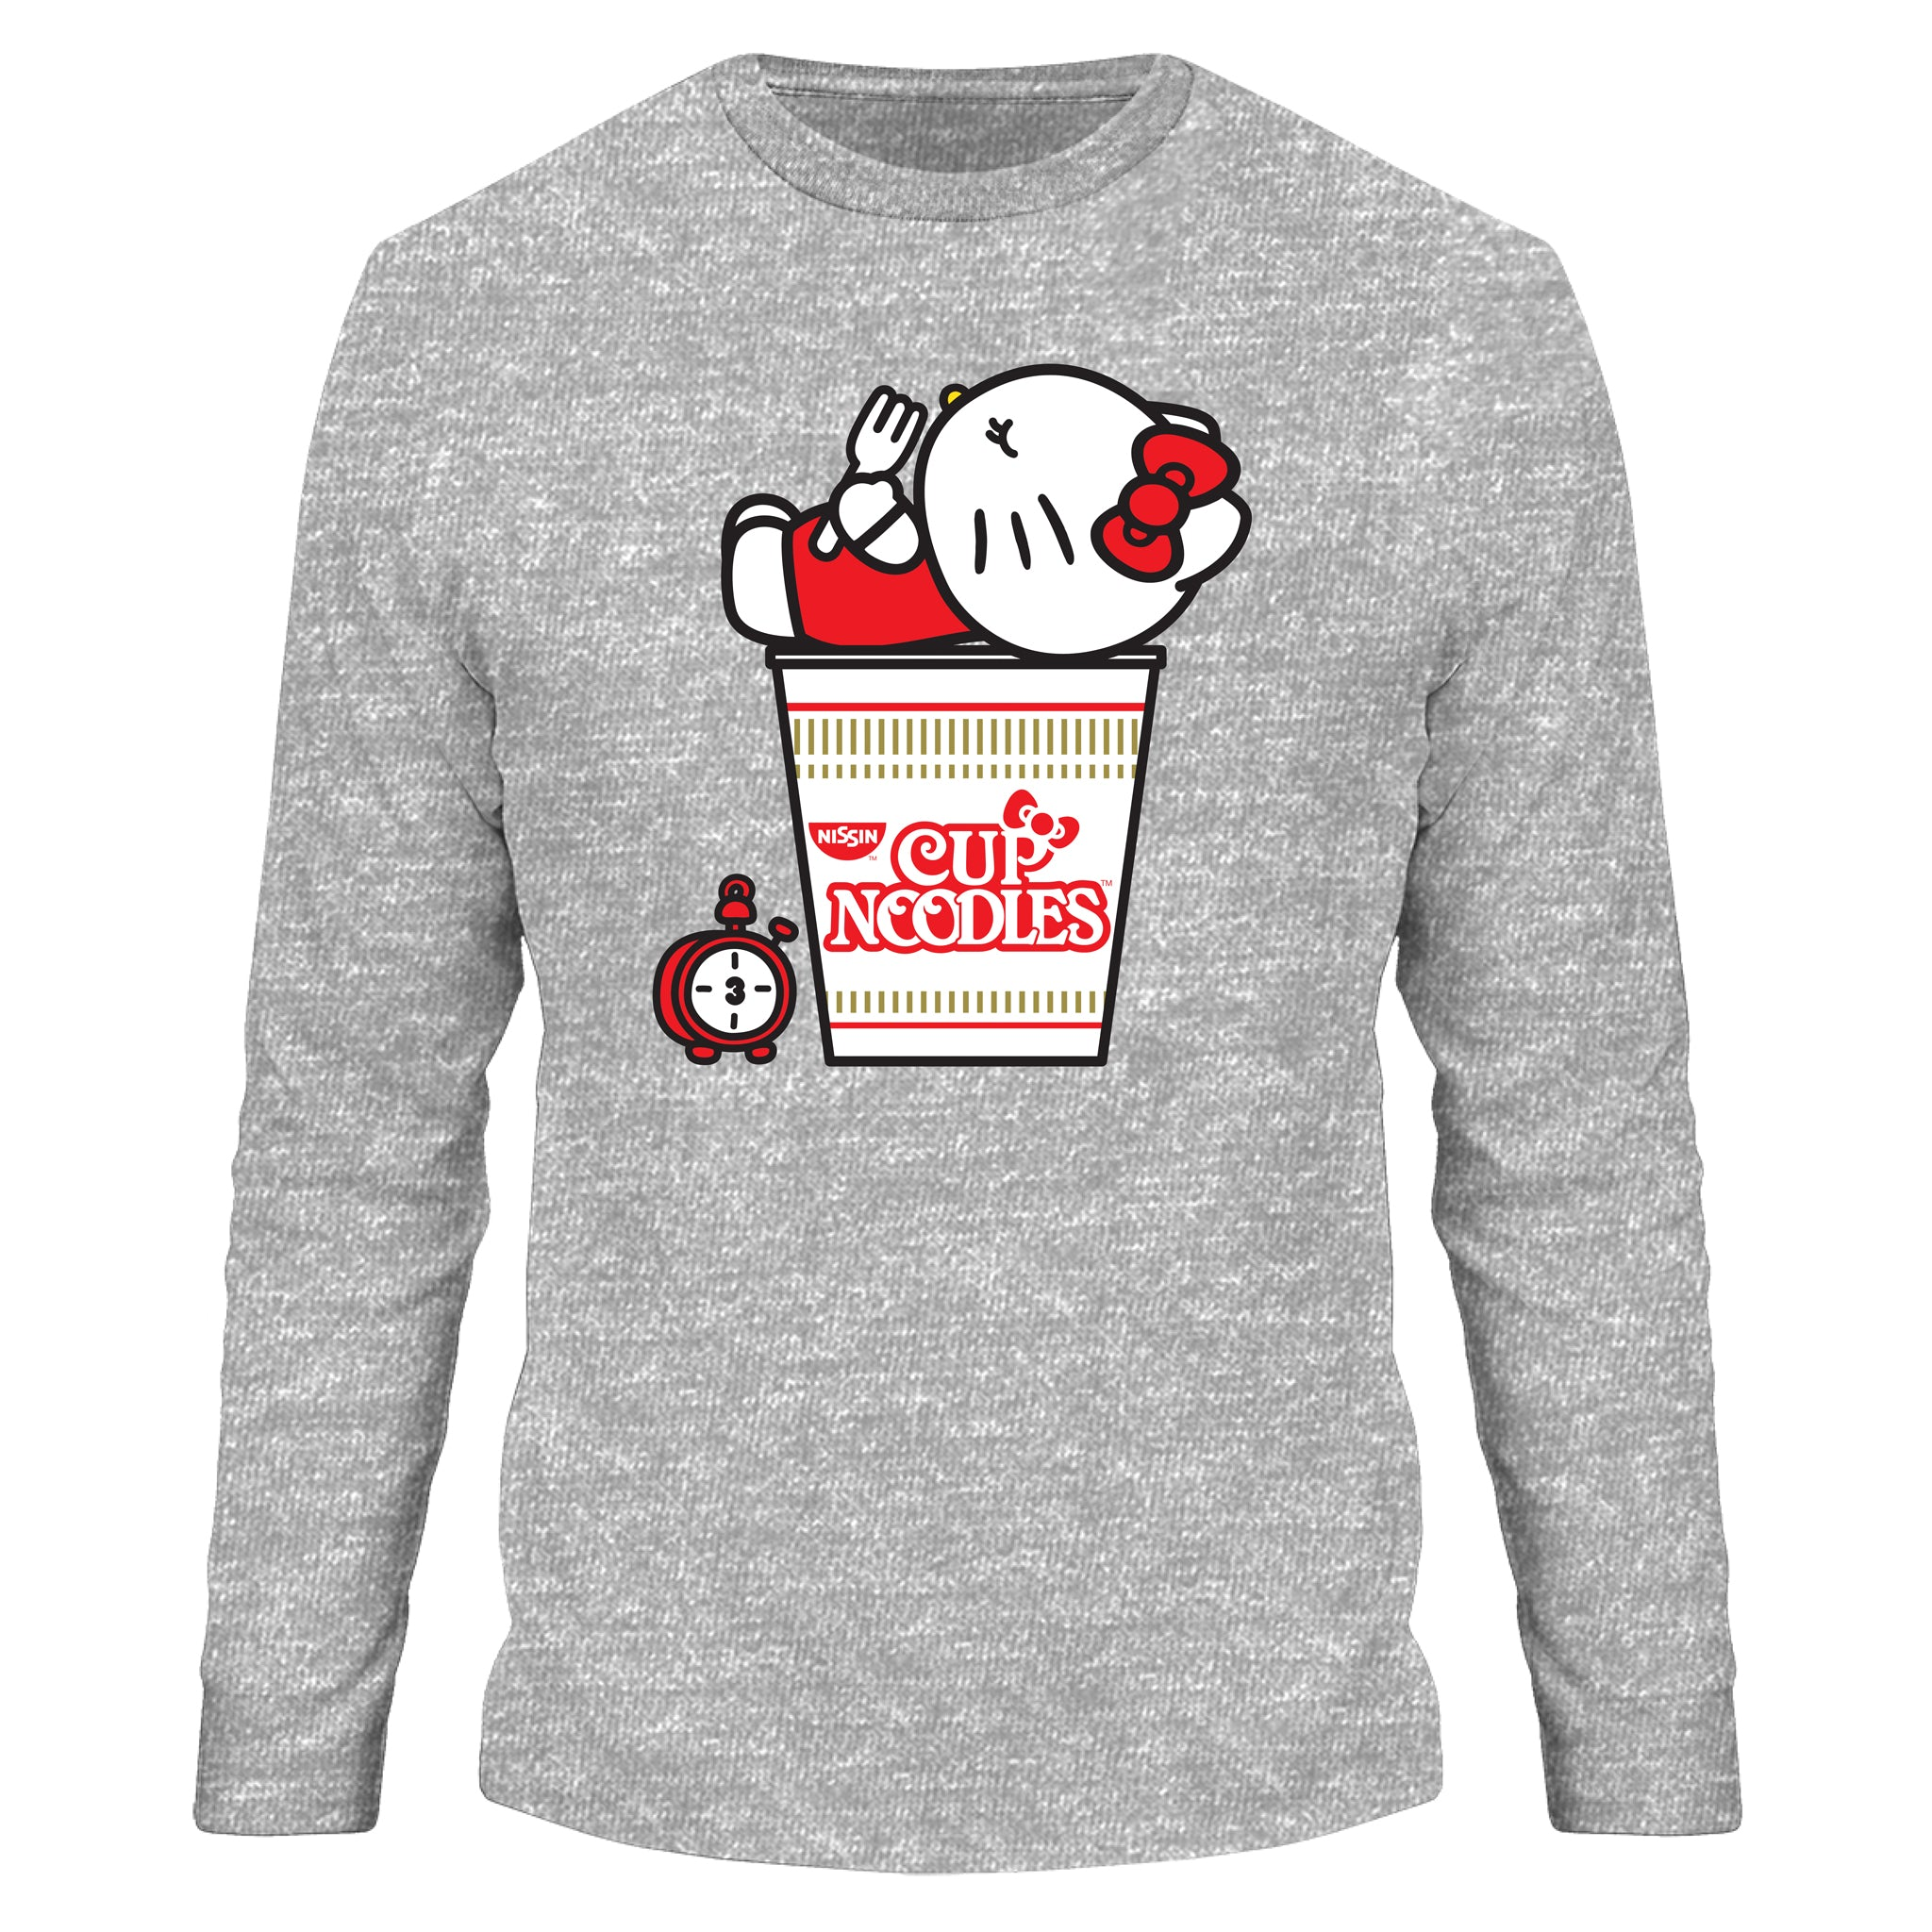 Cup Noodles X Hello Kitty long-sleeved T-shirt